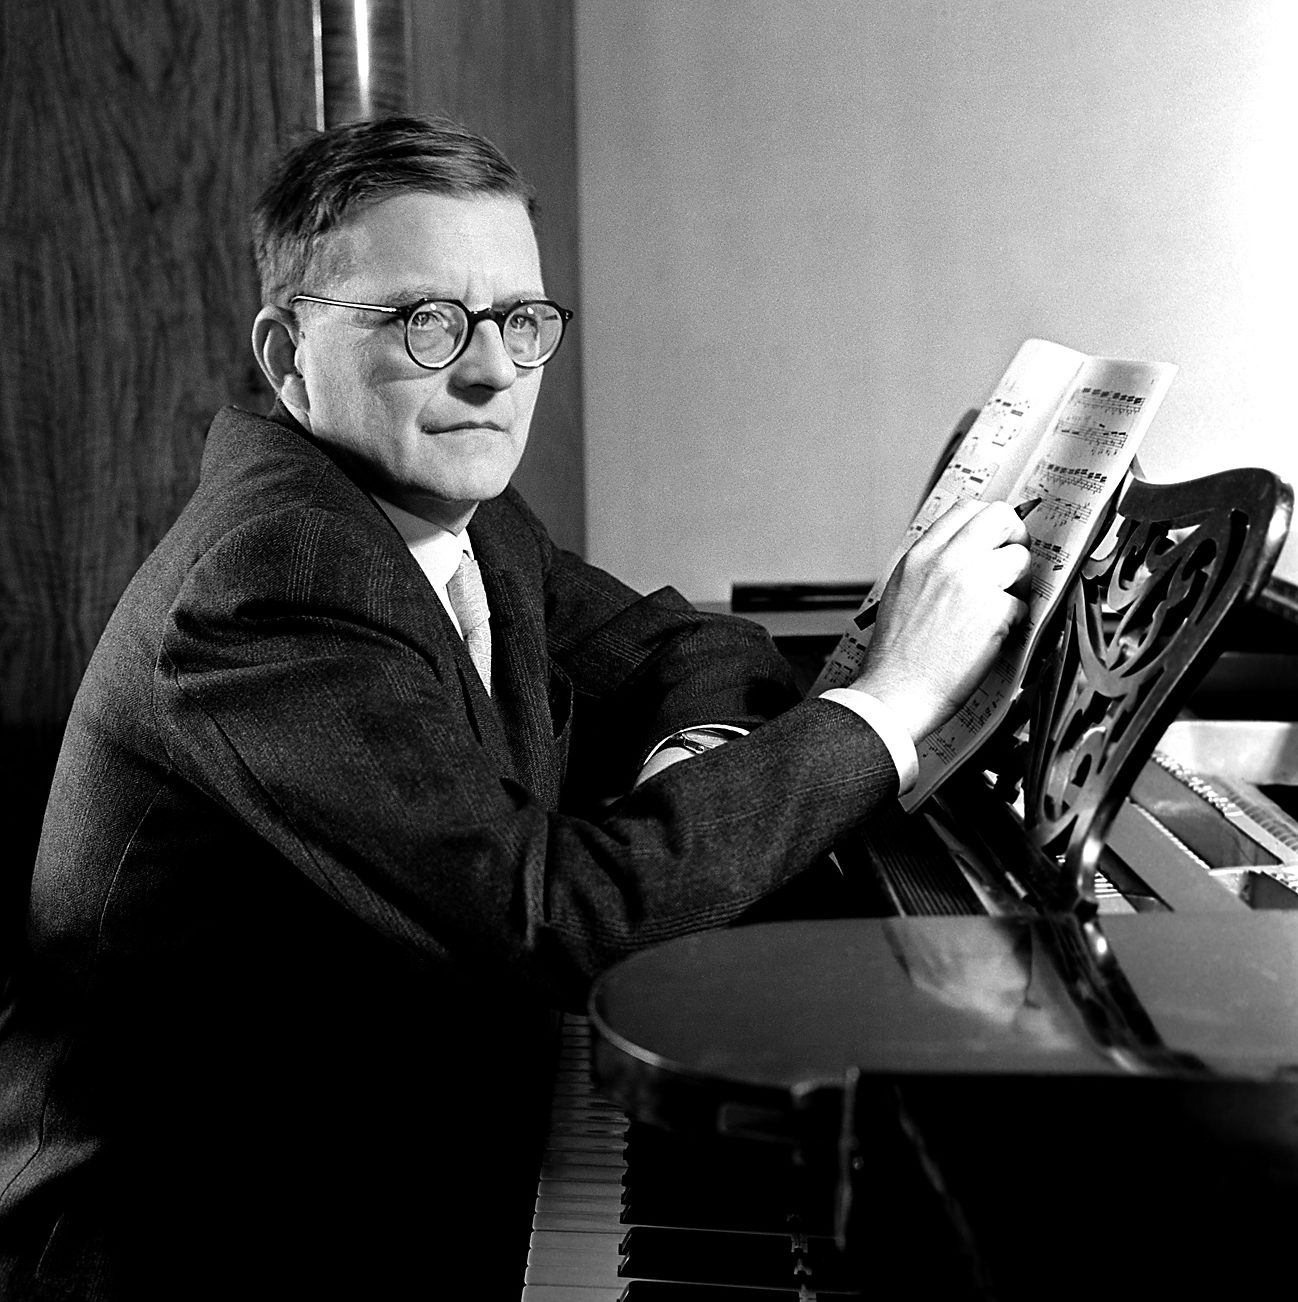 Dmitry Chostakovich